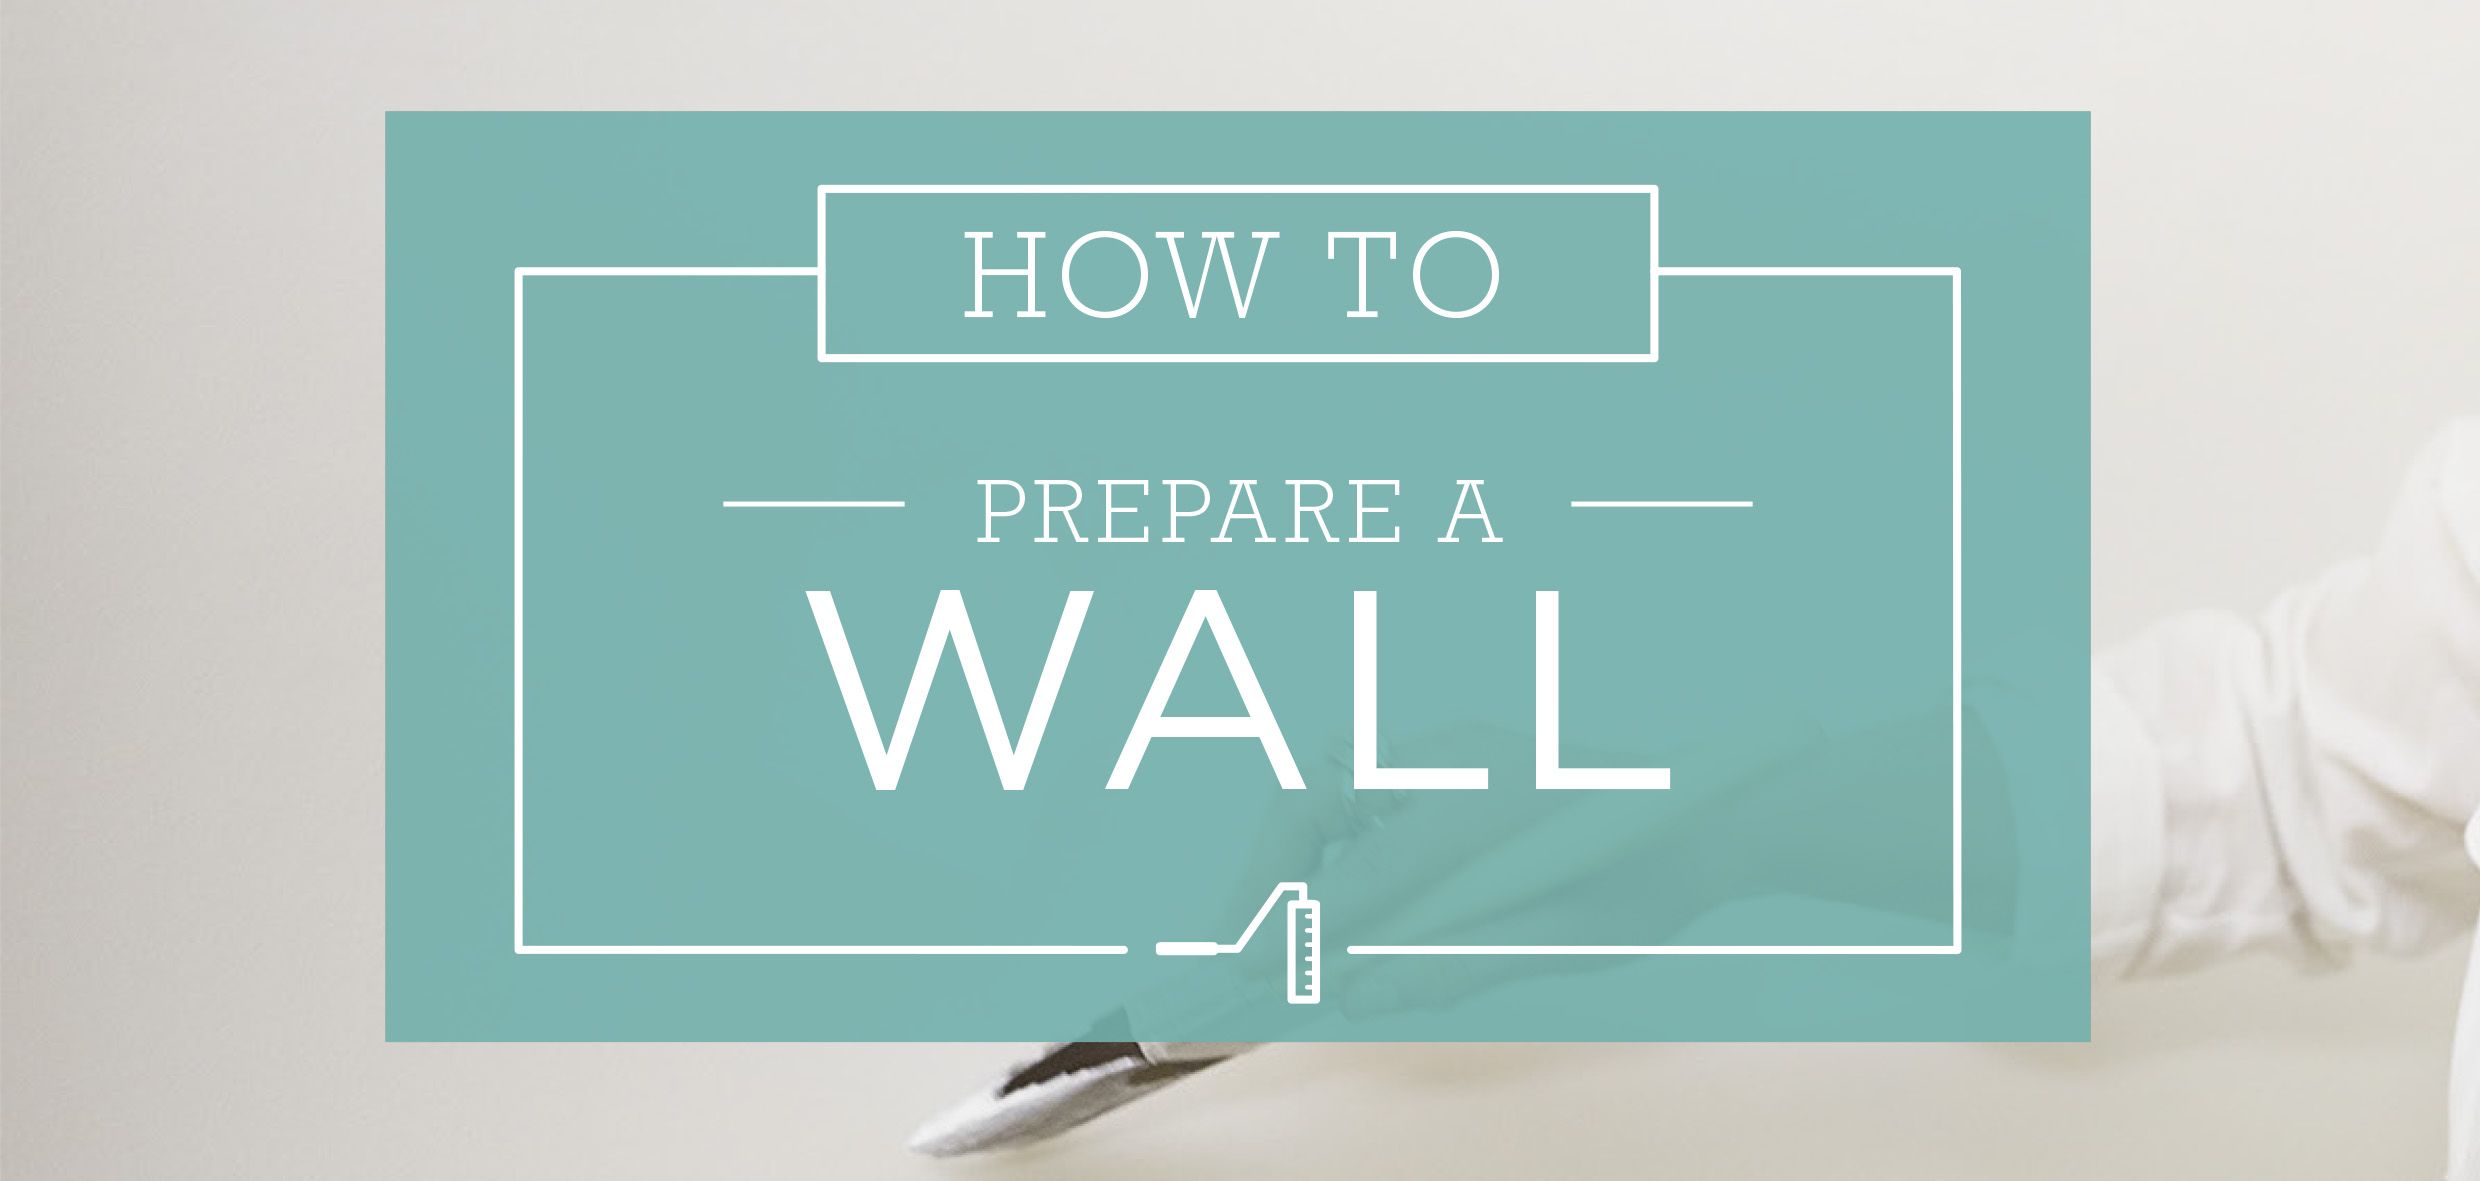 How to Prepare a Wall